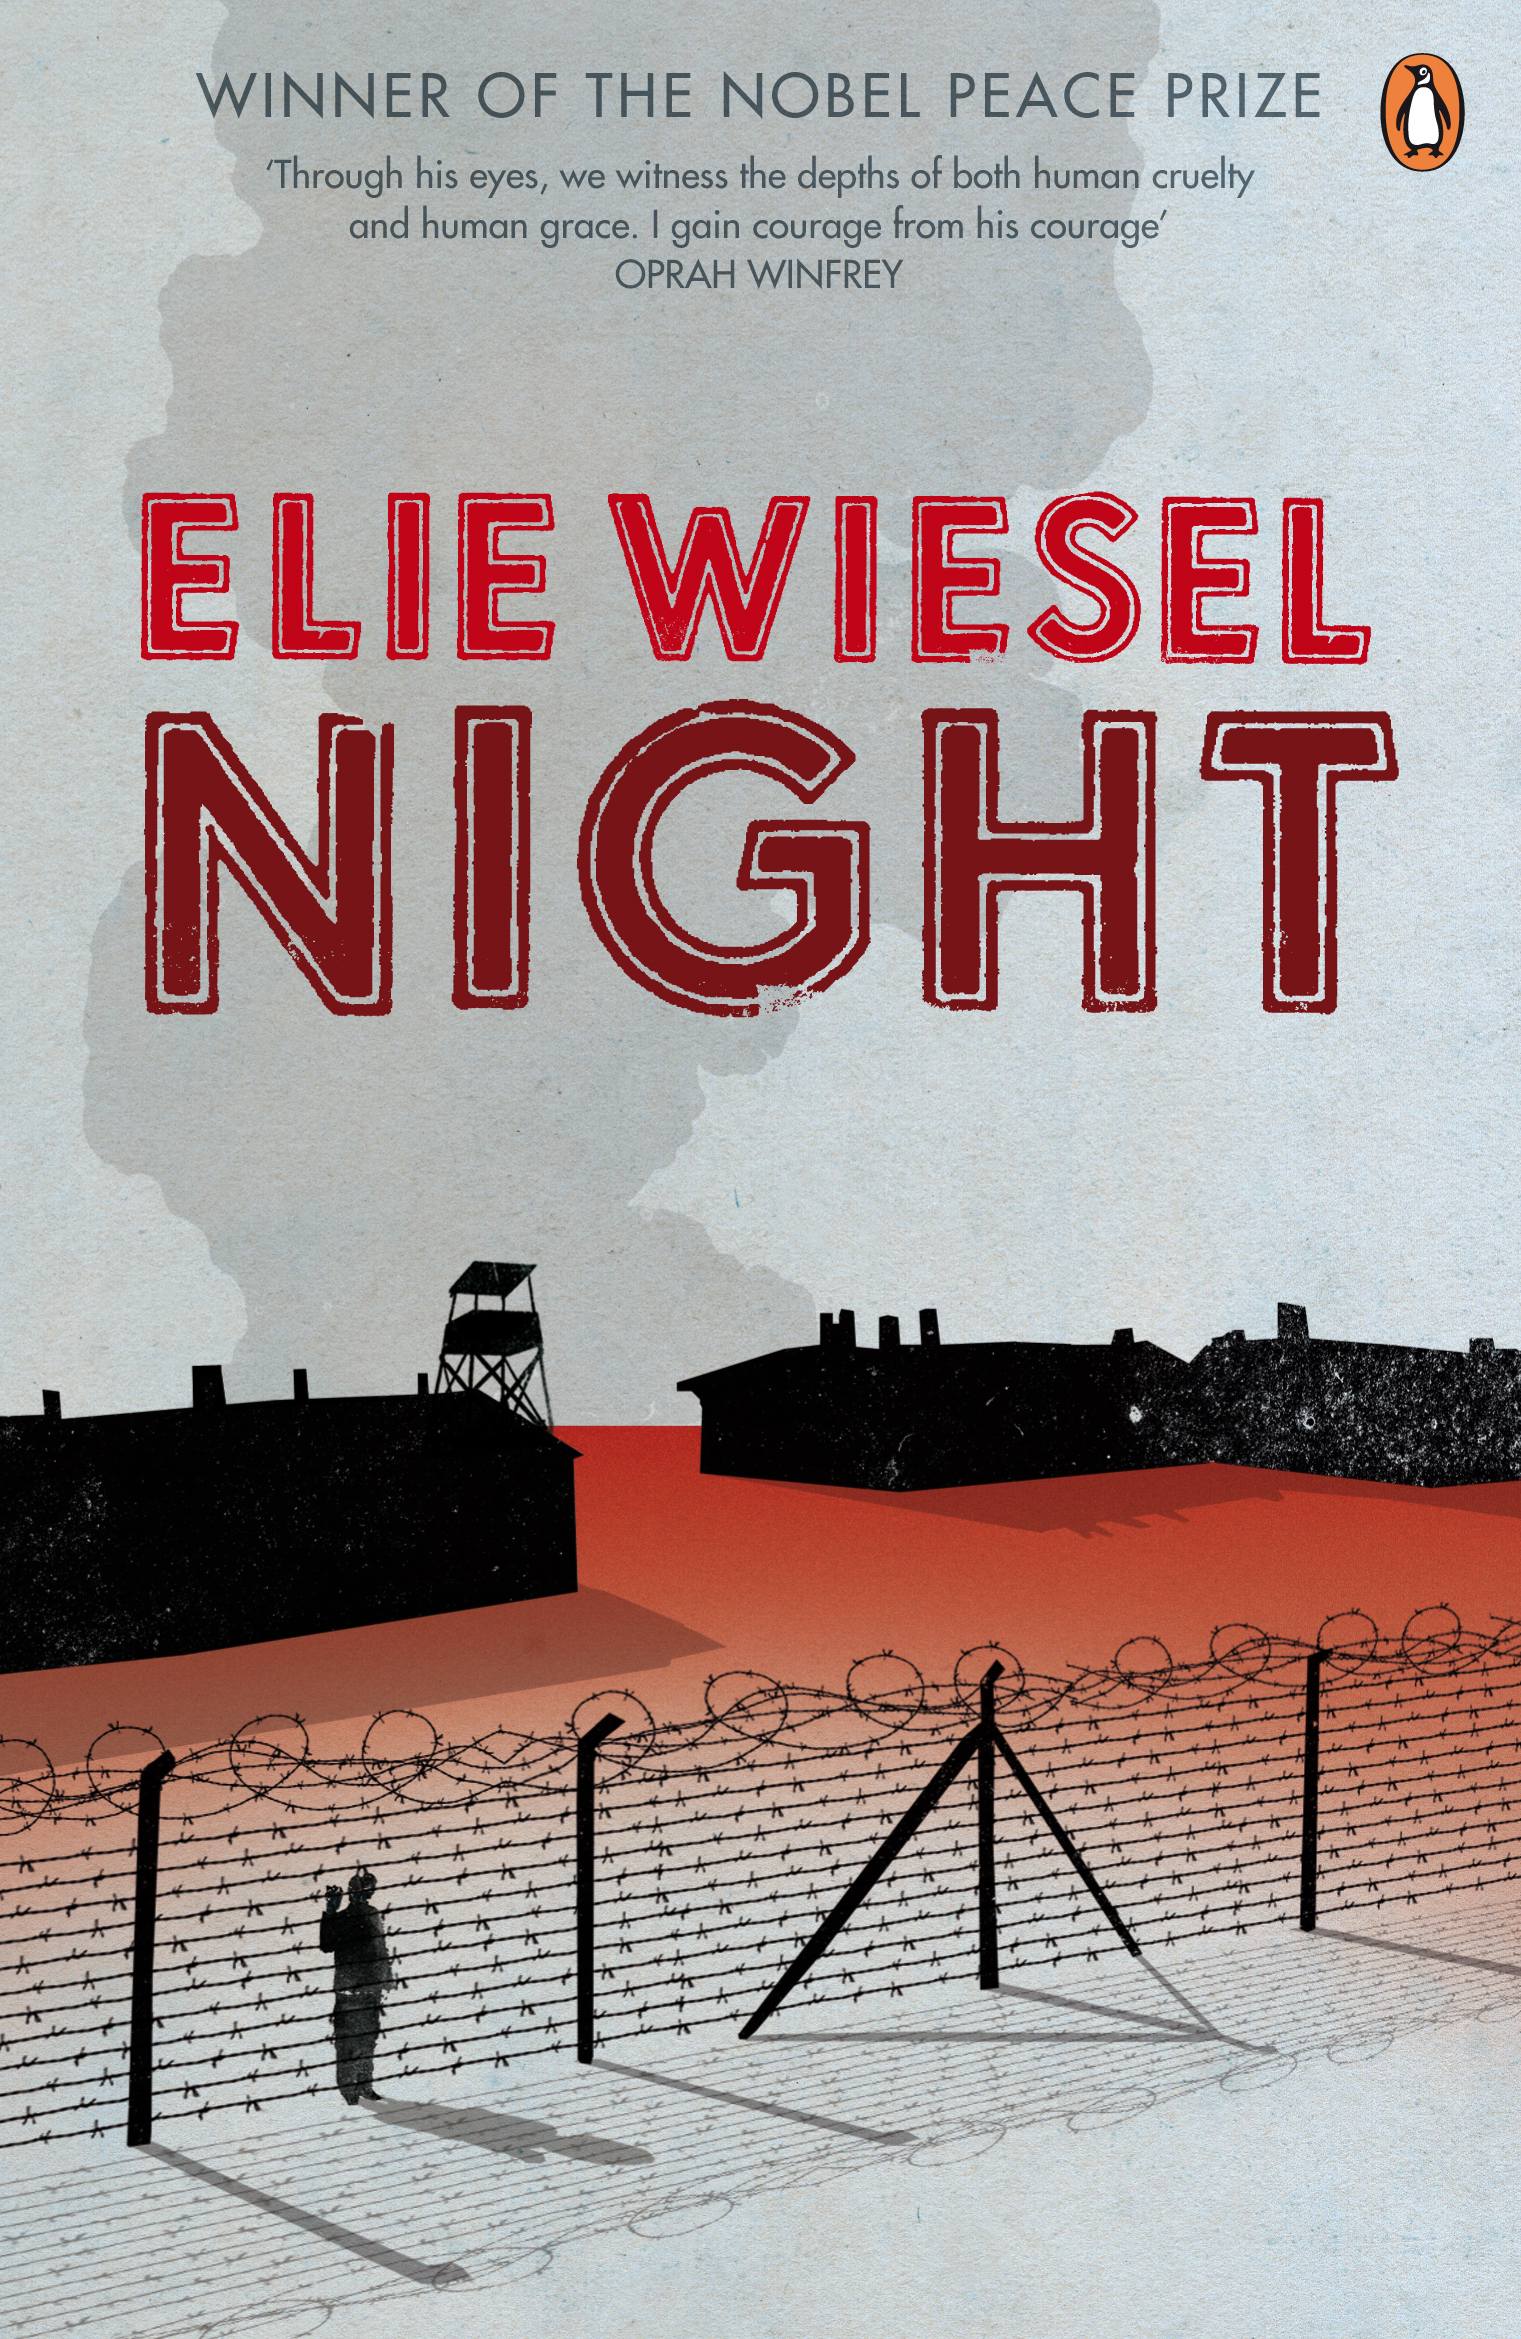 """the book of night women essay The book night like schindler's list is comparatively barren of colour color depicting adjectives are seldomly used more frequently used are shade-like adjectives such as """"dark"""" giving the book a """"black and white"""" feel to it."""